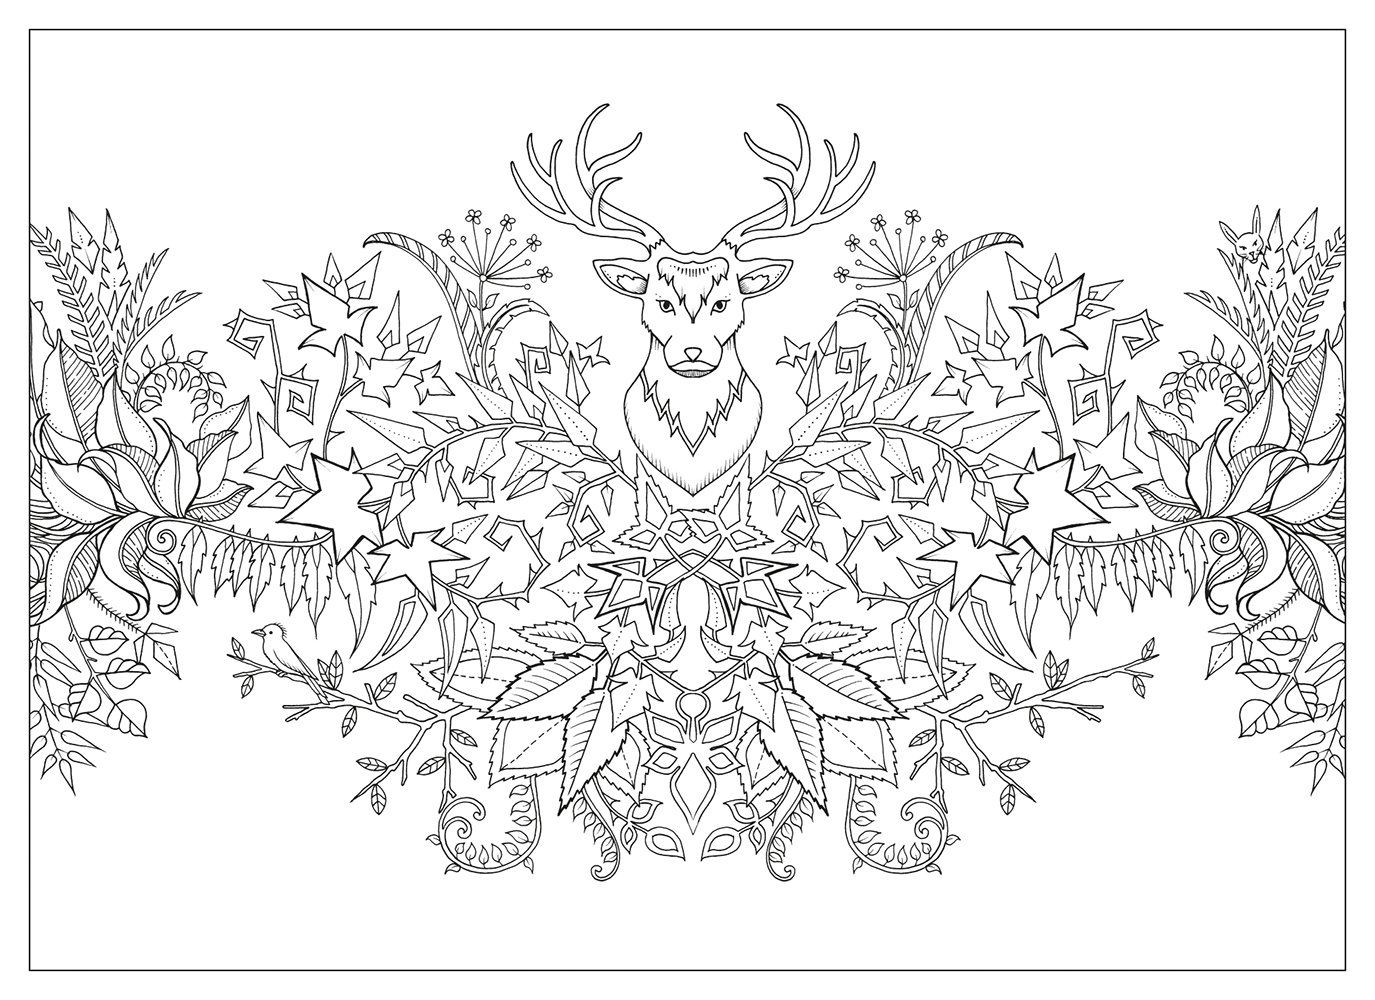 Enchanted forest coloring book website - Johanna Basford Enchanted Forest Coloring For Adults